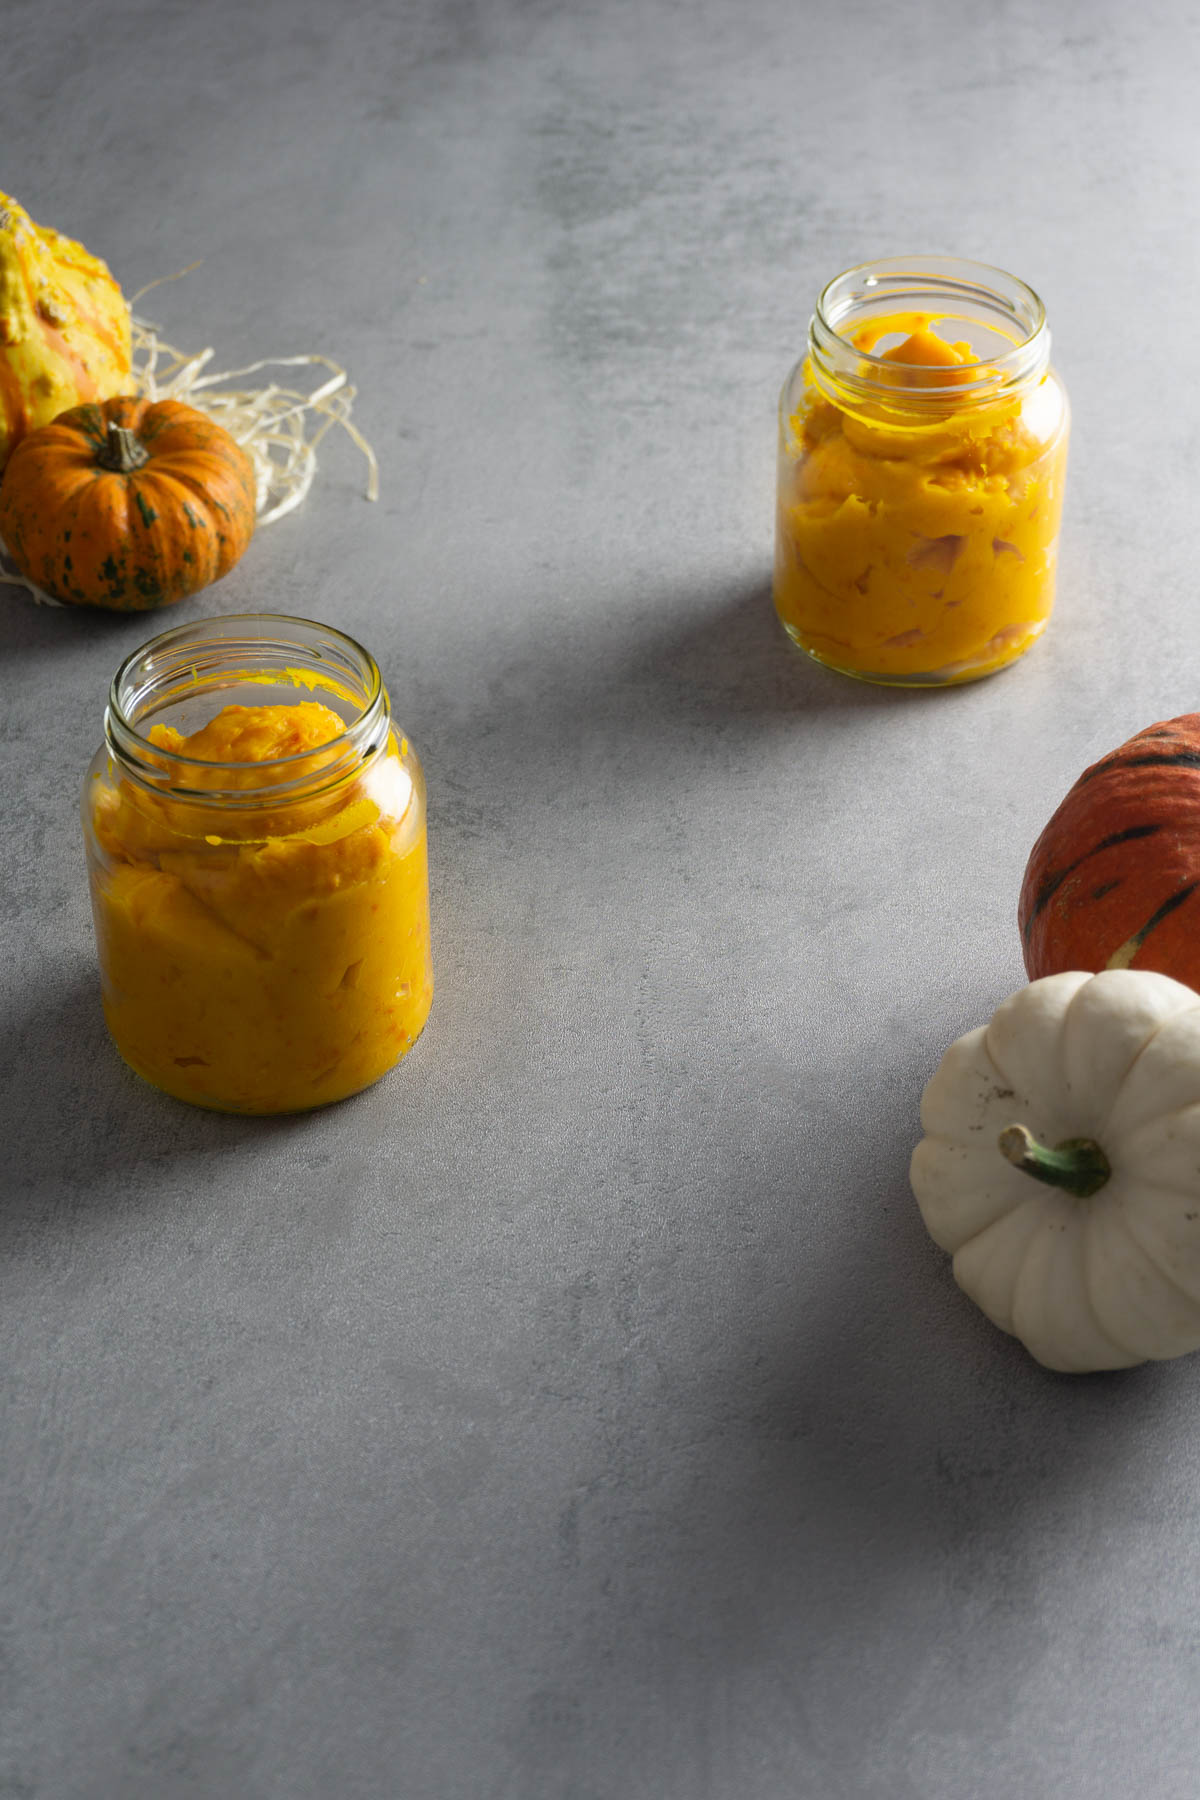 Pumpkin Puree set out with pumpkins in two glasses